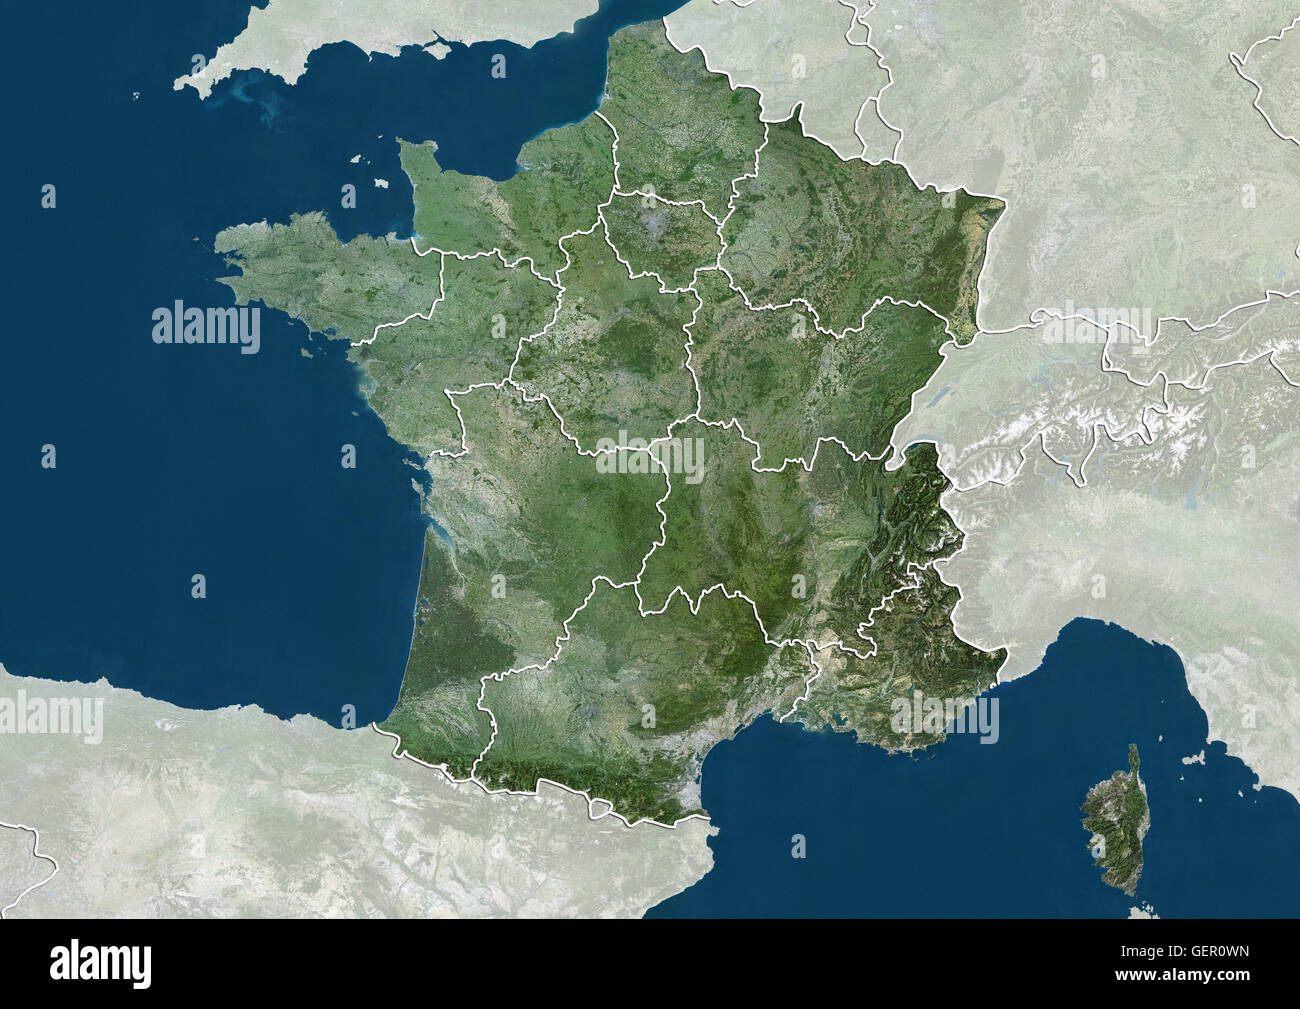 Satellite view of france with new region boundaries this map shows satellite view of france with new region boundaries this map shows the twelve metropolitan regions as of 2016 this image was compiled from data acquired gumiabroncs Images